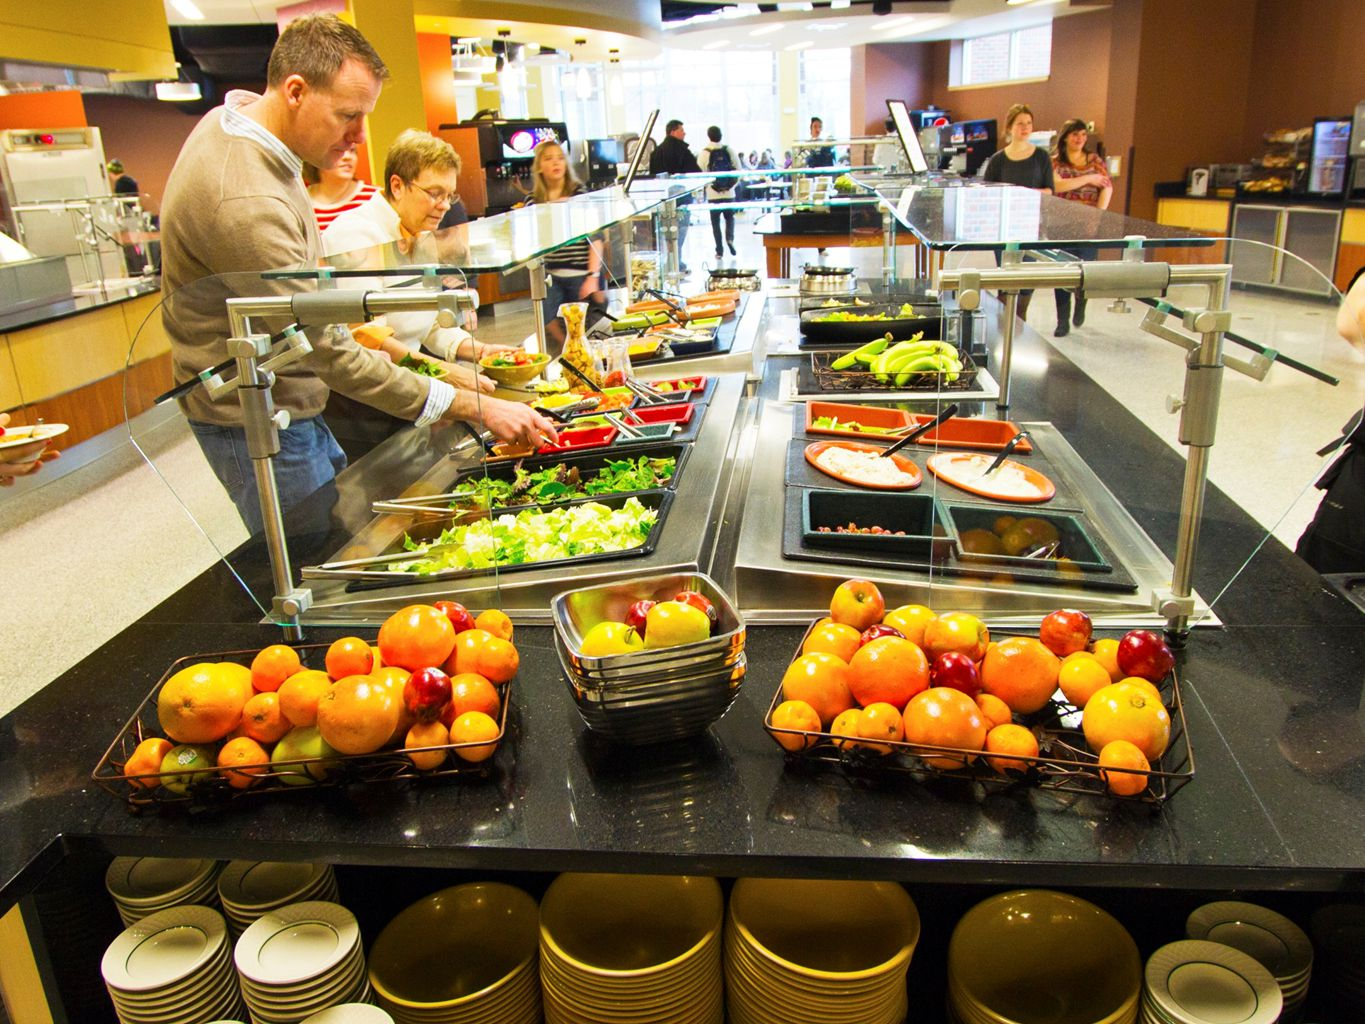 Platinum Meal Plan - Required for students in a traditional residence hall -Unlimited Dine-In Access to Ruth's MarketplaceRuth's Marketplace -10 passes for guests or for meals to go -$400 meal dollars